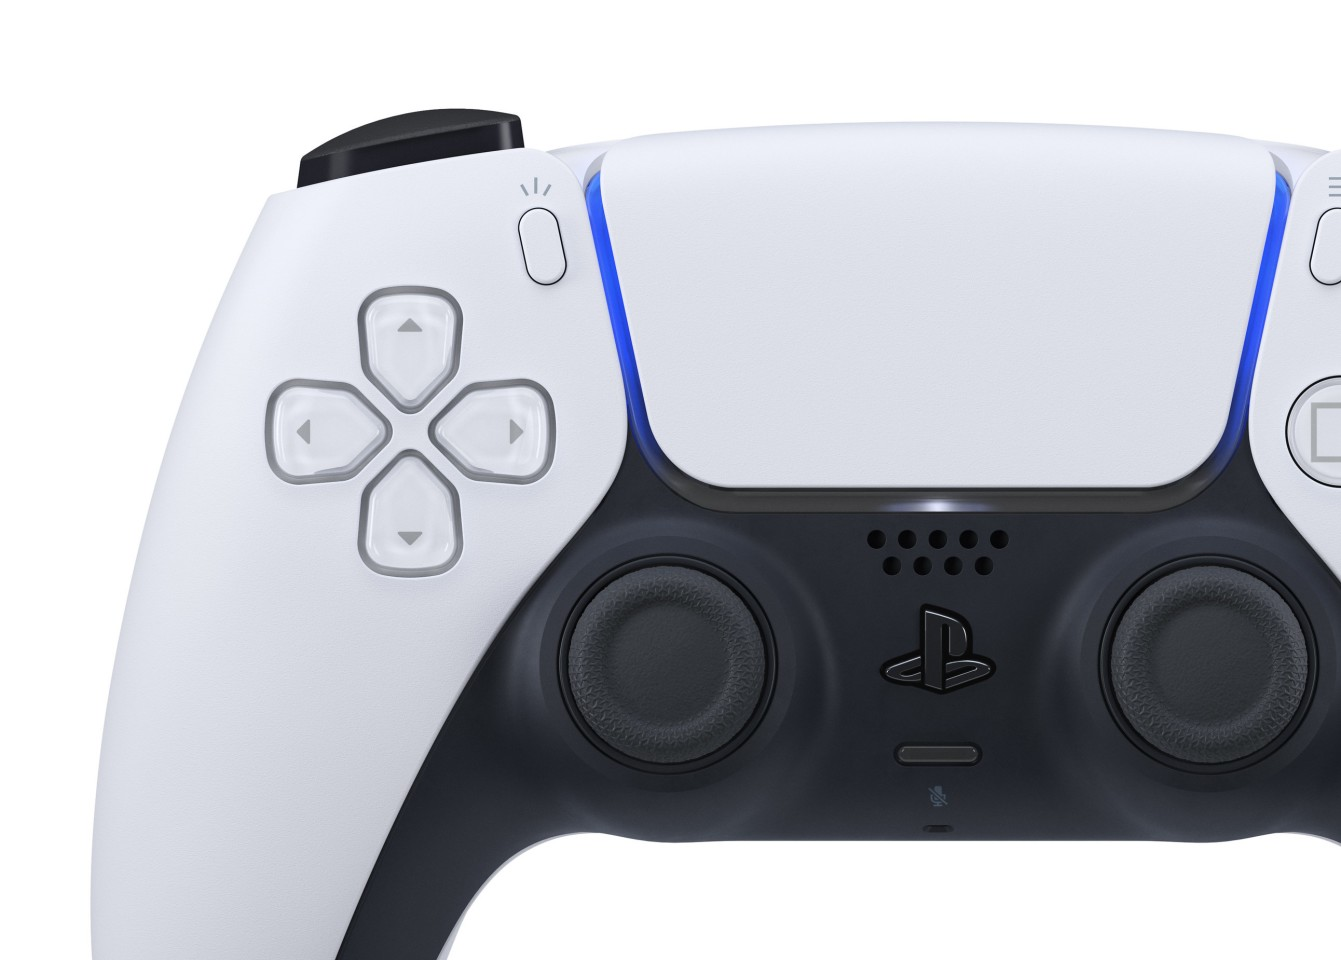 On the PlayStation 5 DualSense controller, the Share button is now called Create, and the PS button is now in the shape of the PlayStation logo